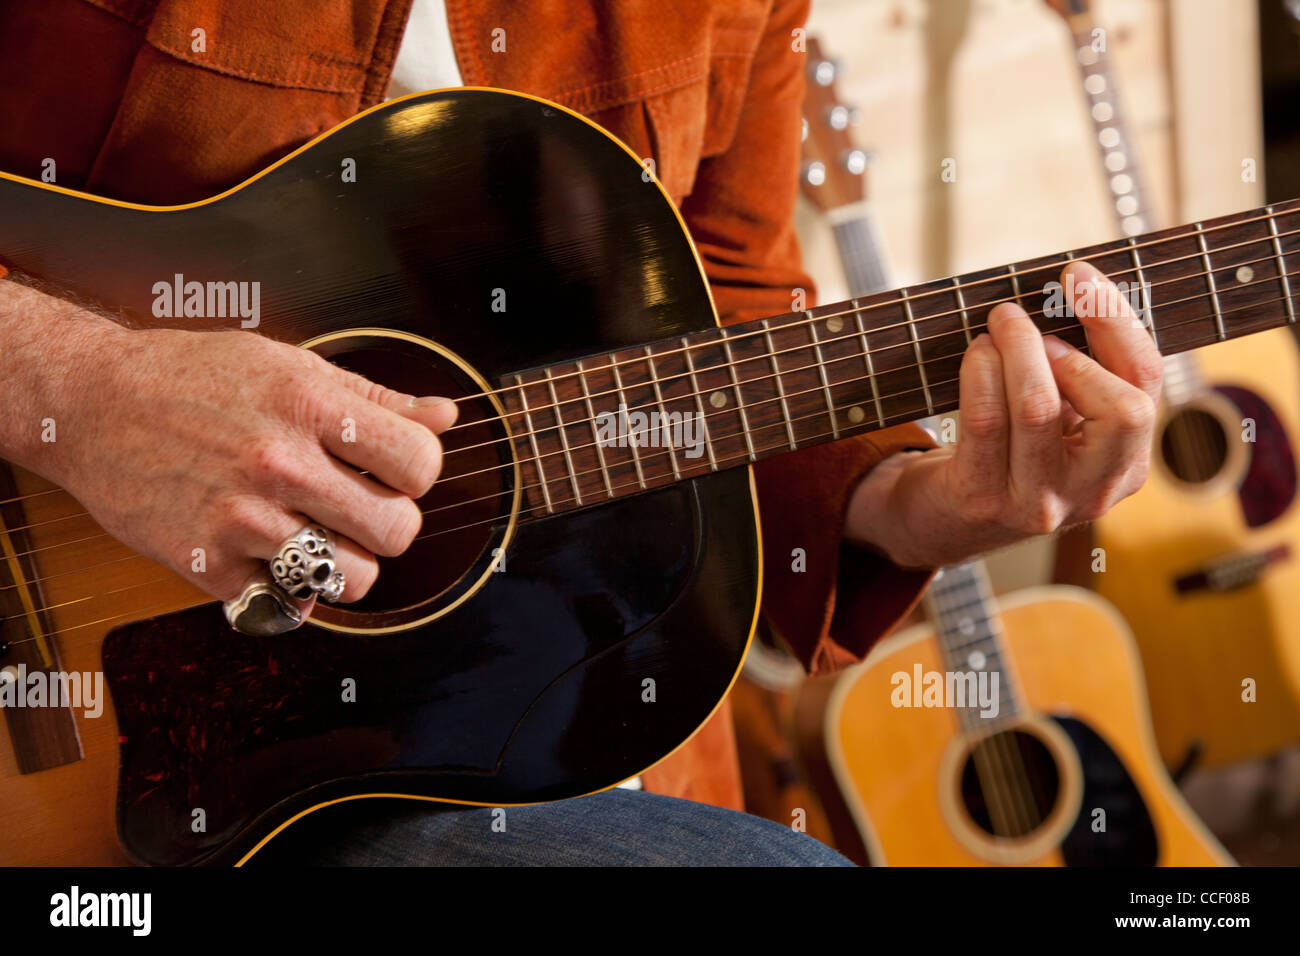 Close-up of man's torso practicing with guitar - Stock Image